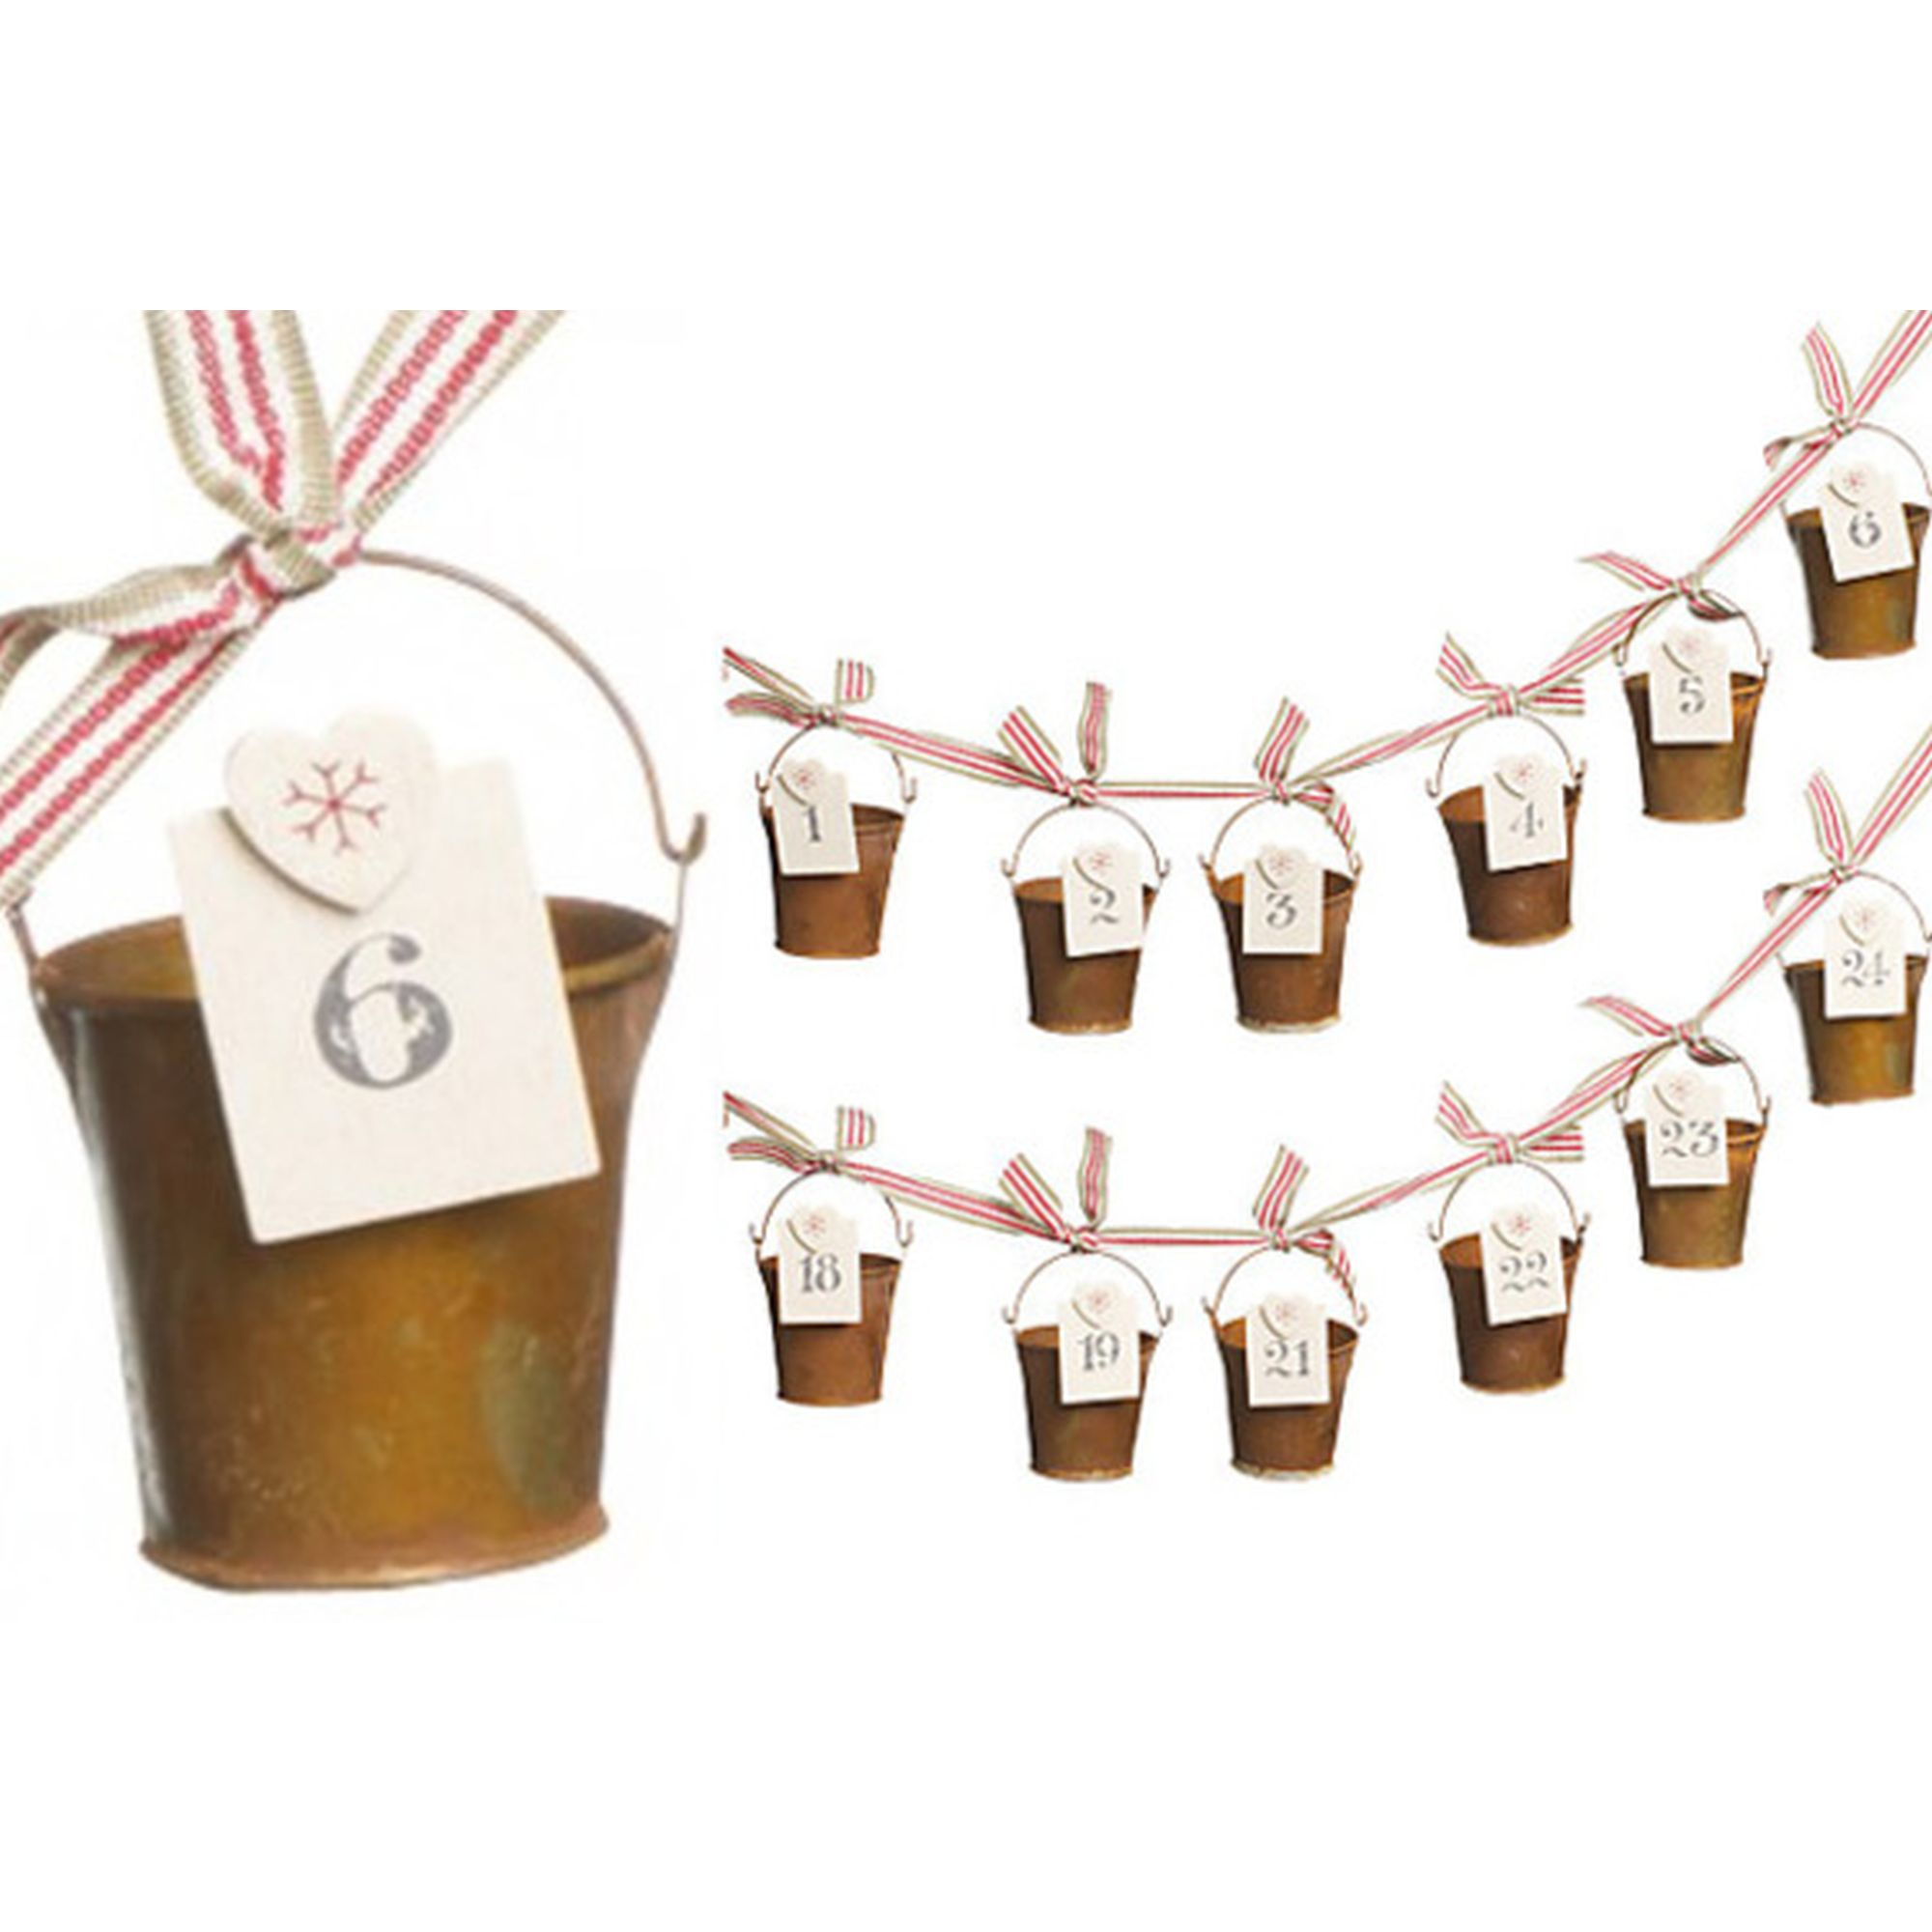 EAST OF INDIA VINTAGE RUSTY BUCKET CHRISTMAS ADVENT CALENDAR GARLAND ...